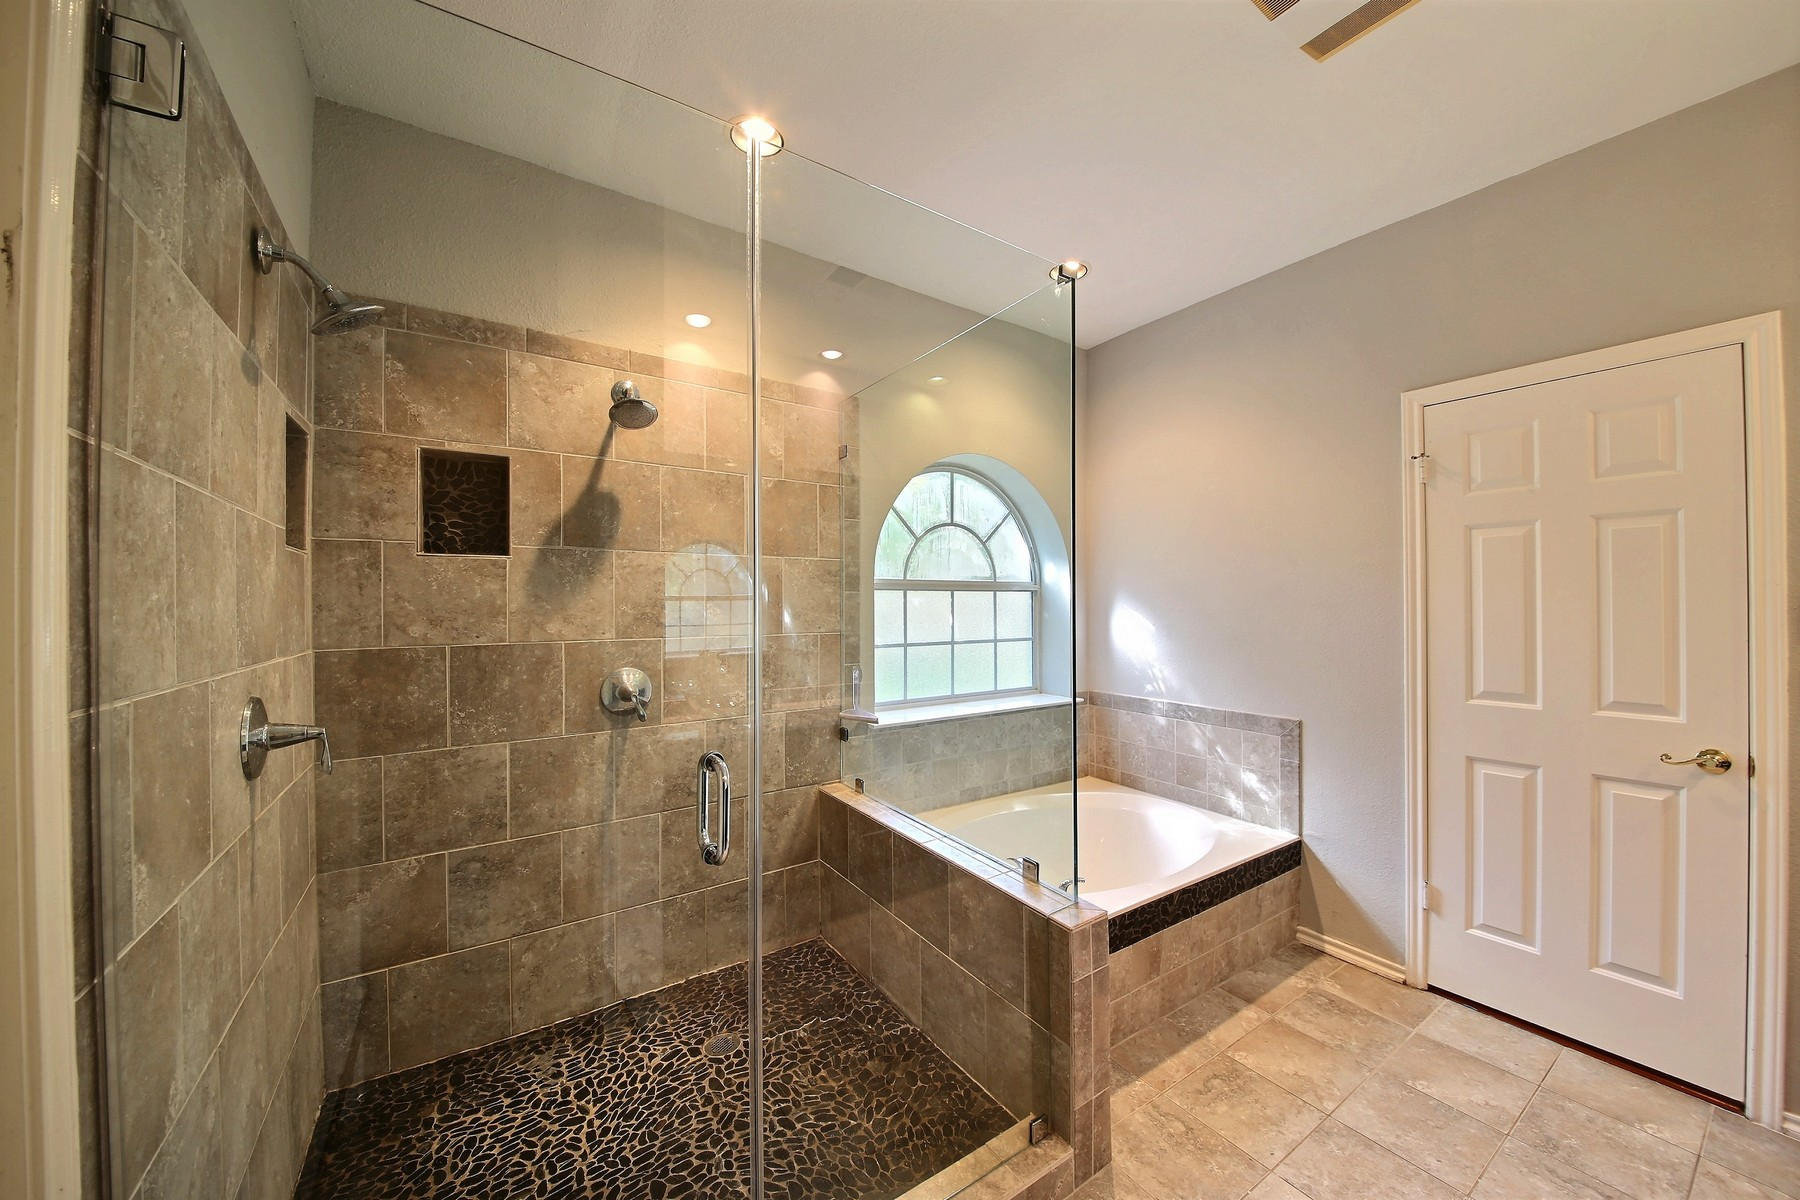 15 designing tips for remodeling your bathroom renovate on 81 Bathroom Design And Tips For Designing Your Own Bathroom id=16030